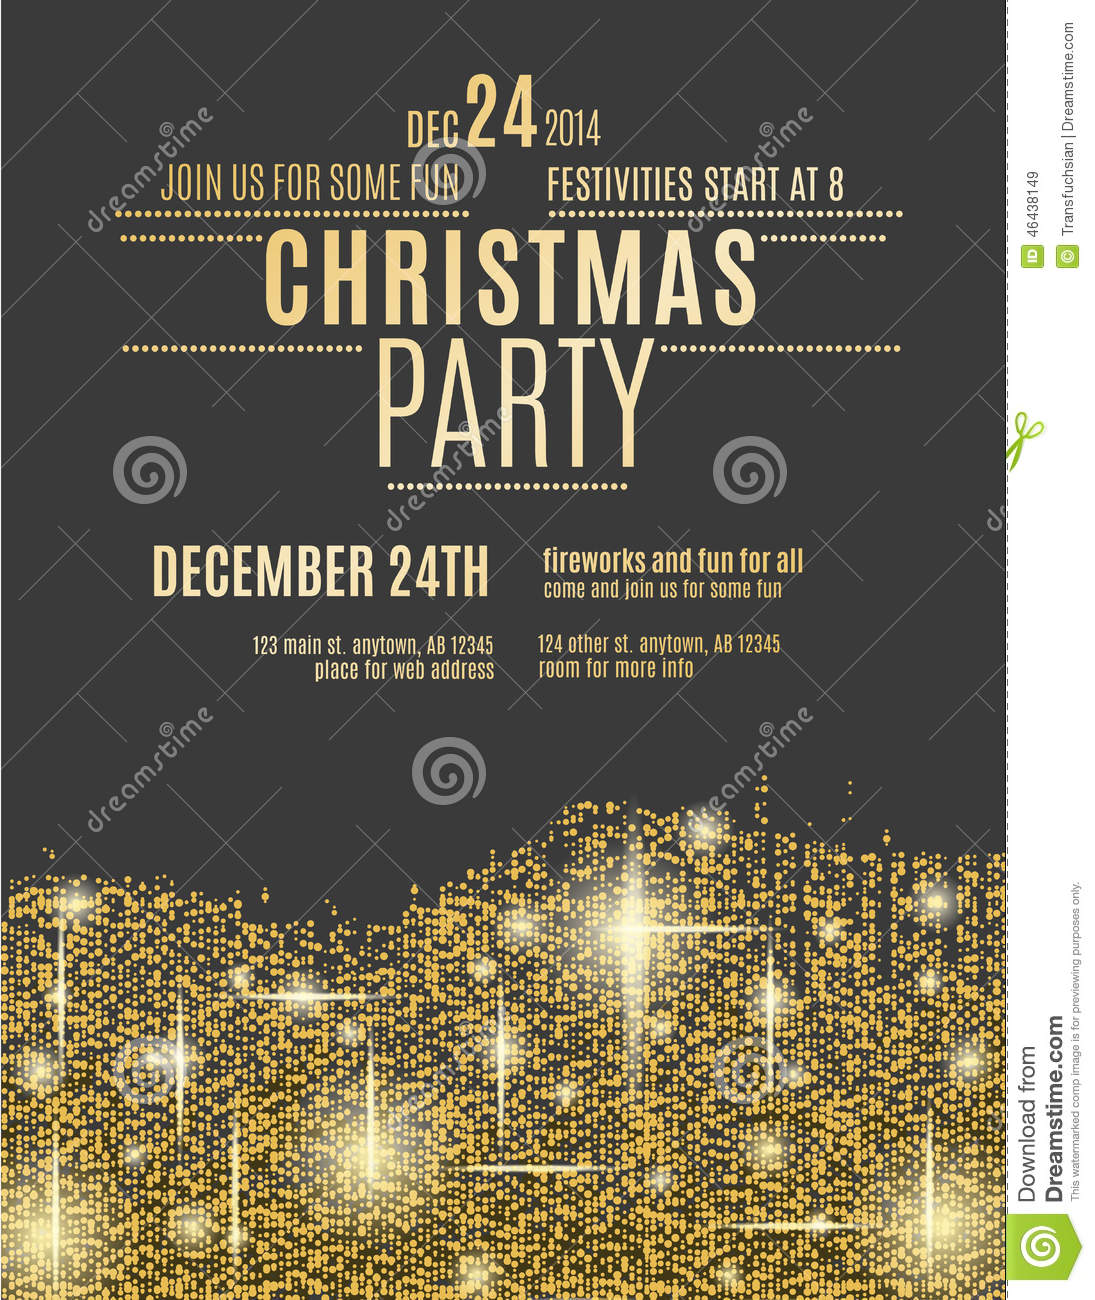 holiday party flyer template - itemroshop.tk